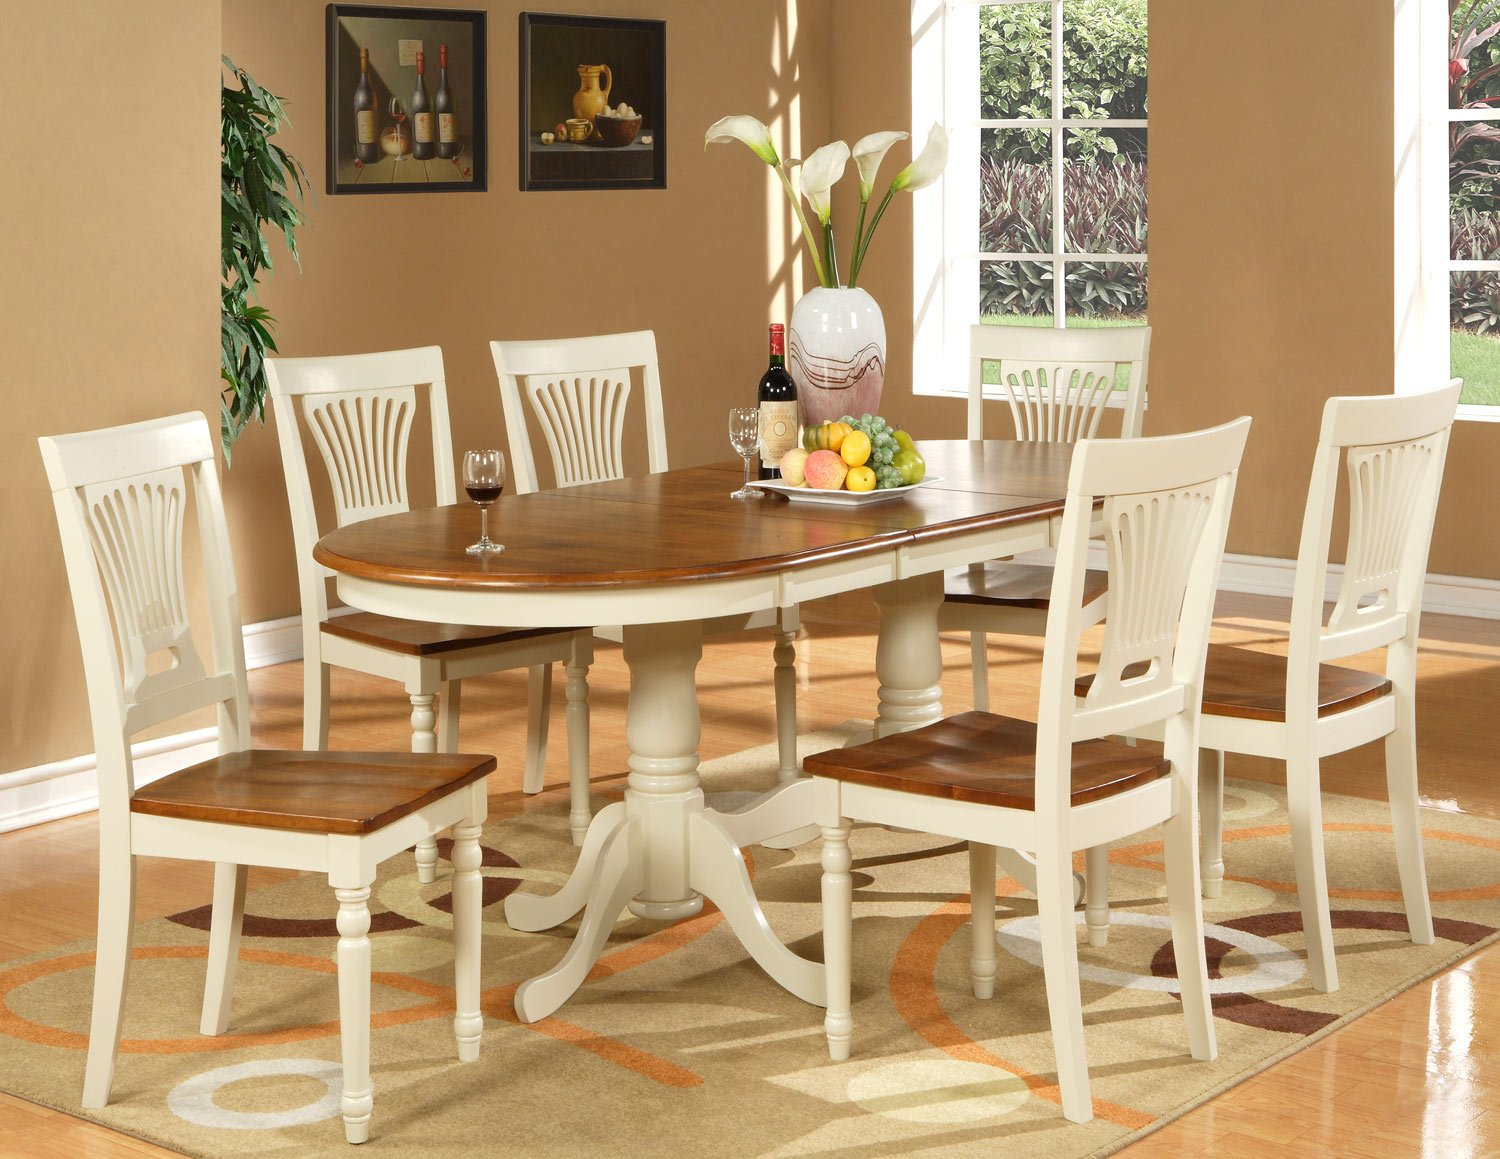 """9-PC Plainfield Oval Dining Room Table Set + 8 Chairs - Size: 42""""x78"""" in Butter milk. SKU: PL9-WHI"""